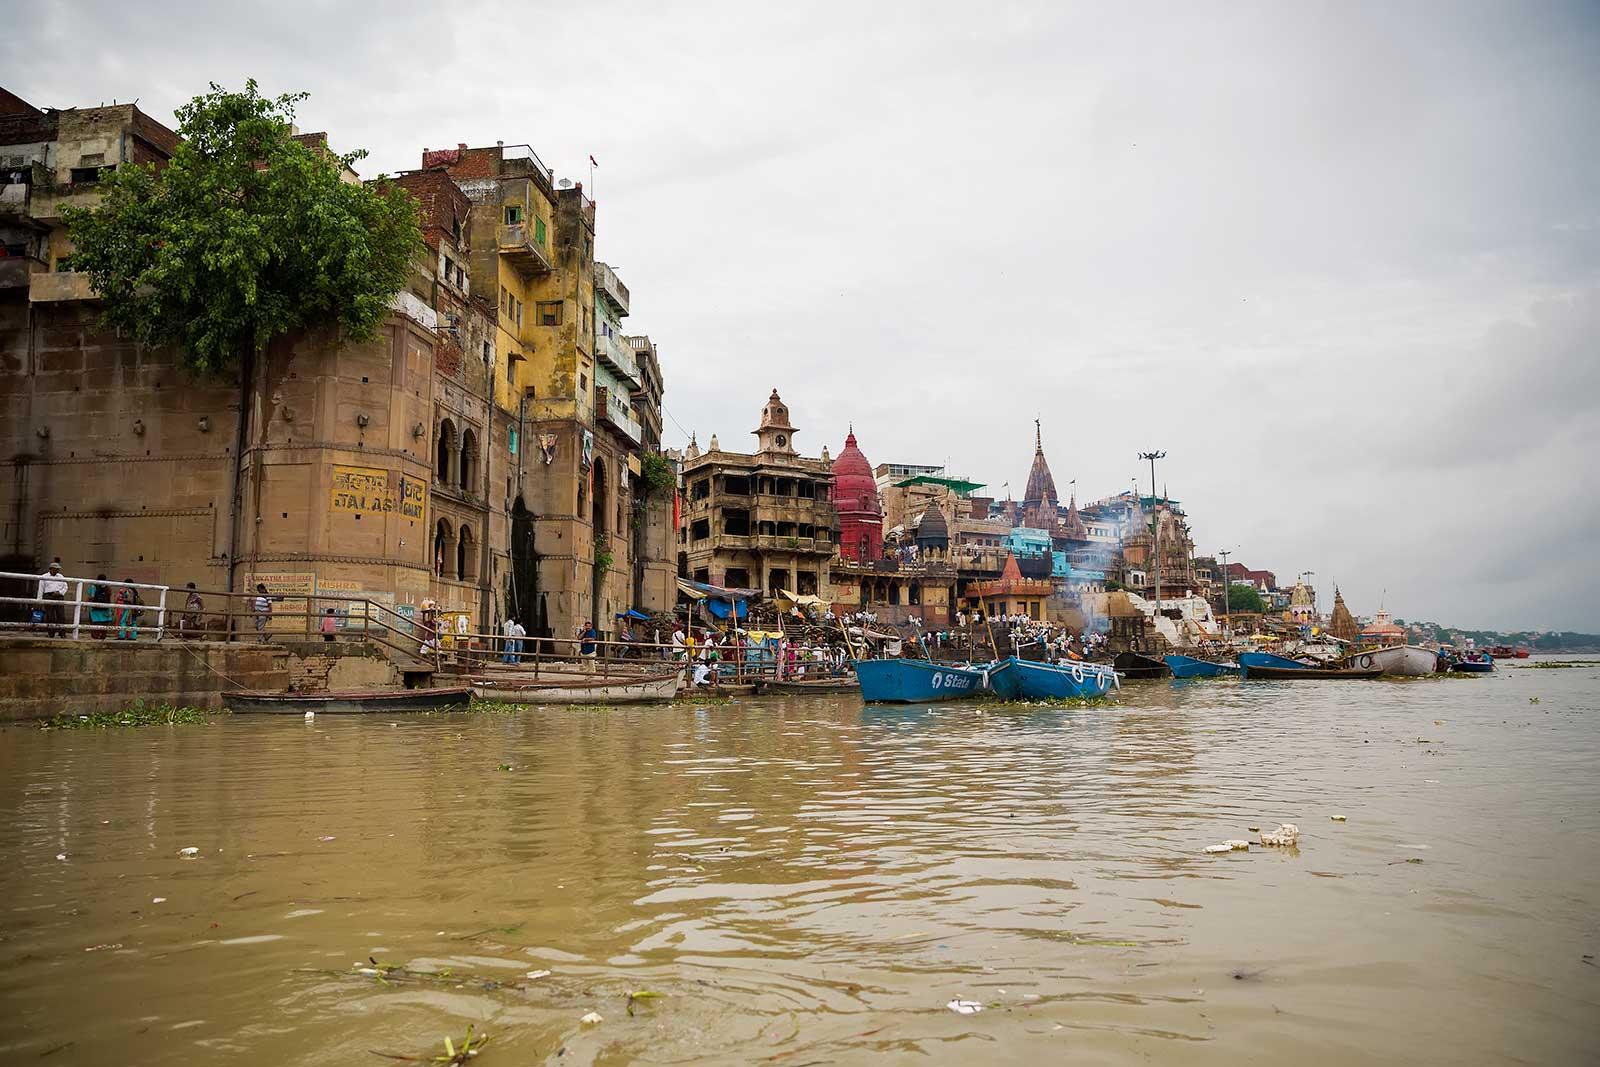 The view of the Varanasi skyline is breathtaking - especially from a boat.